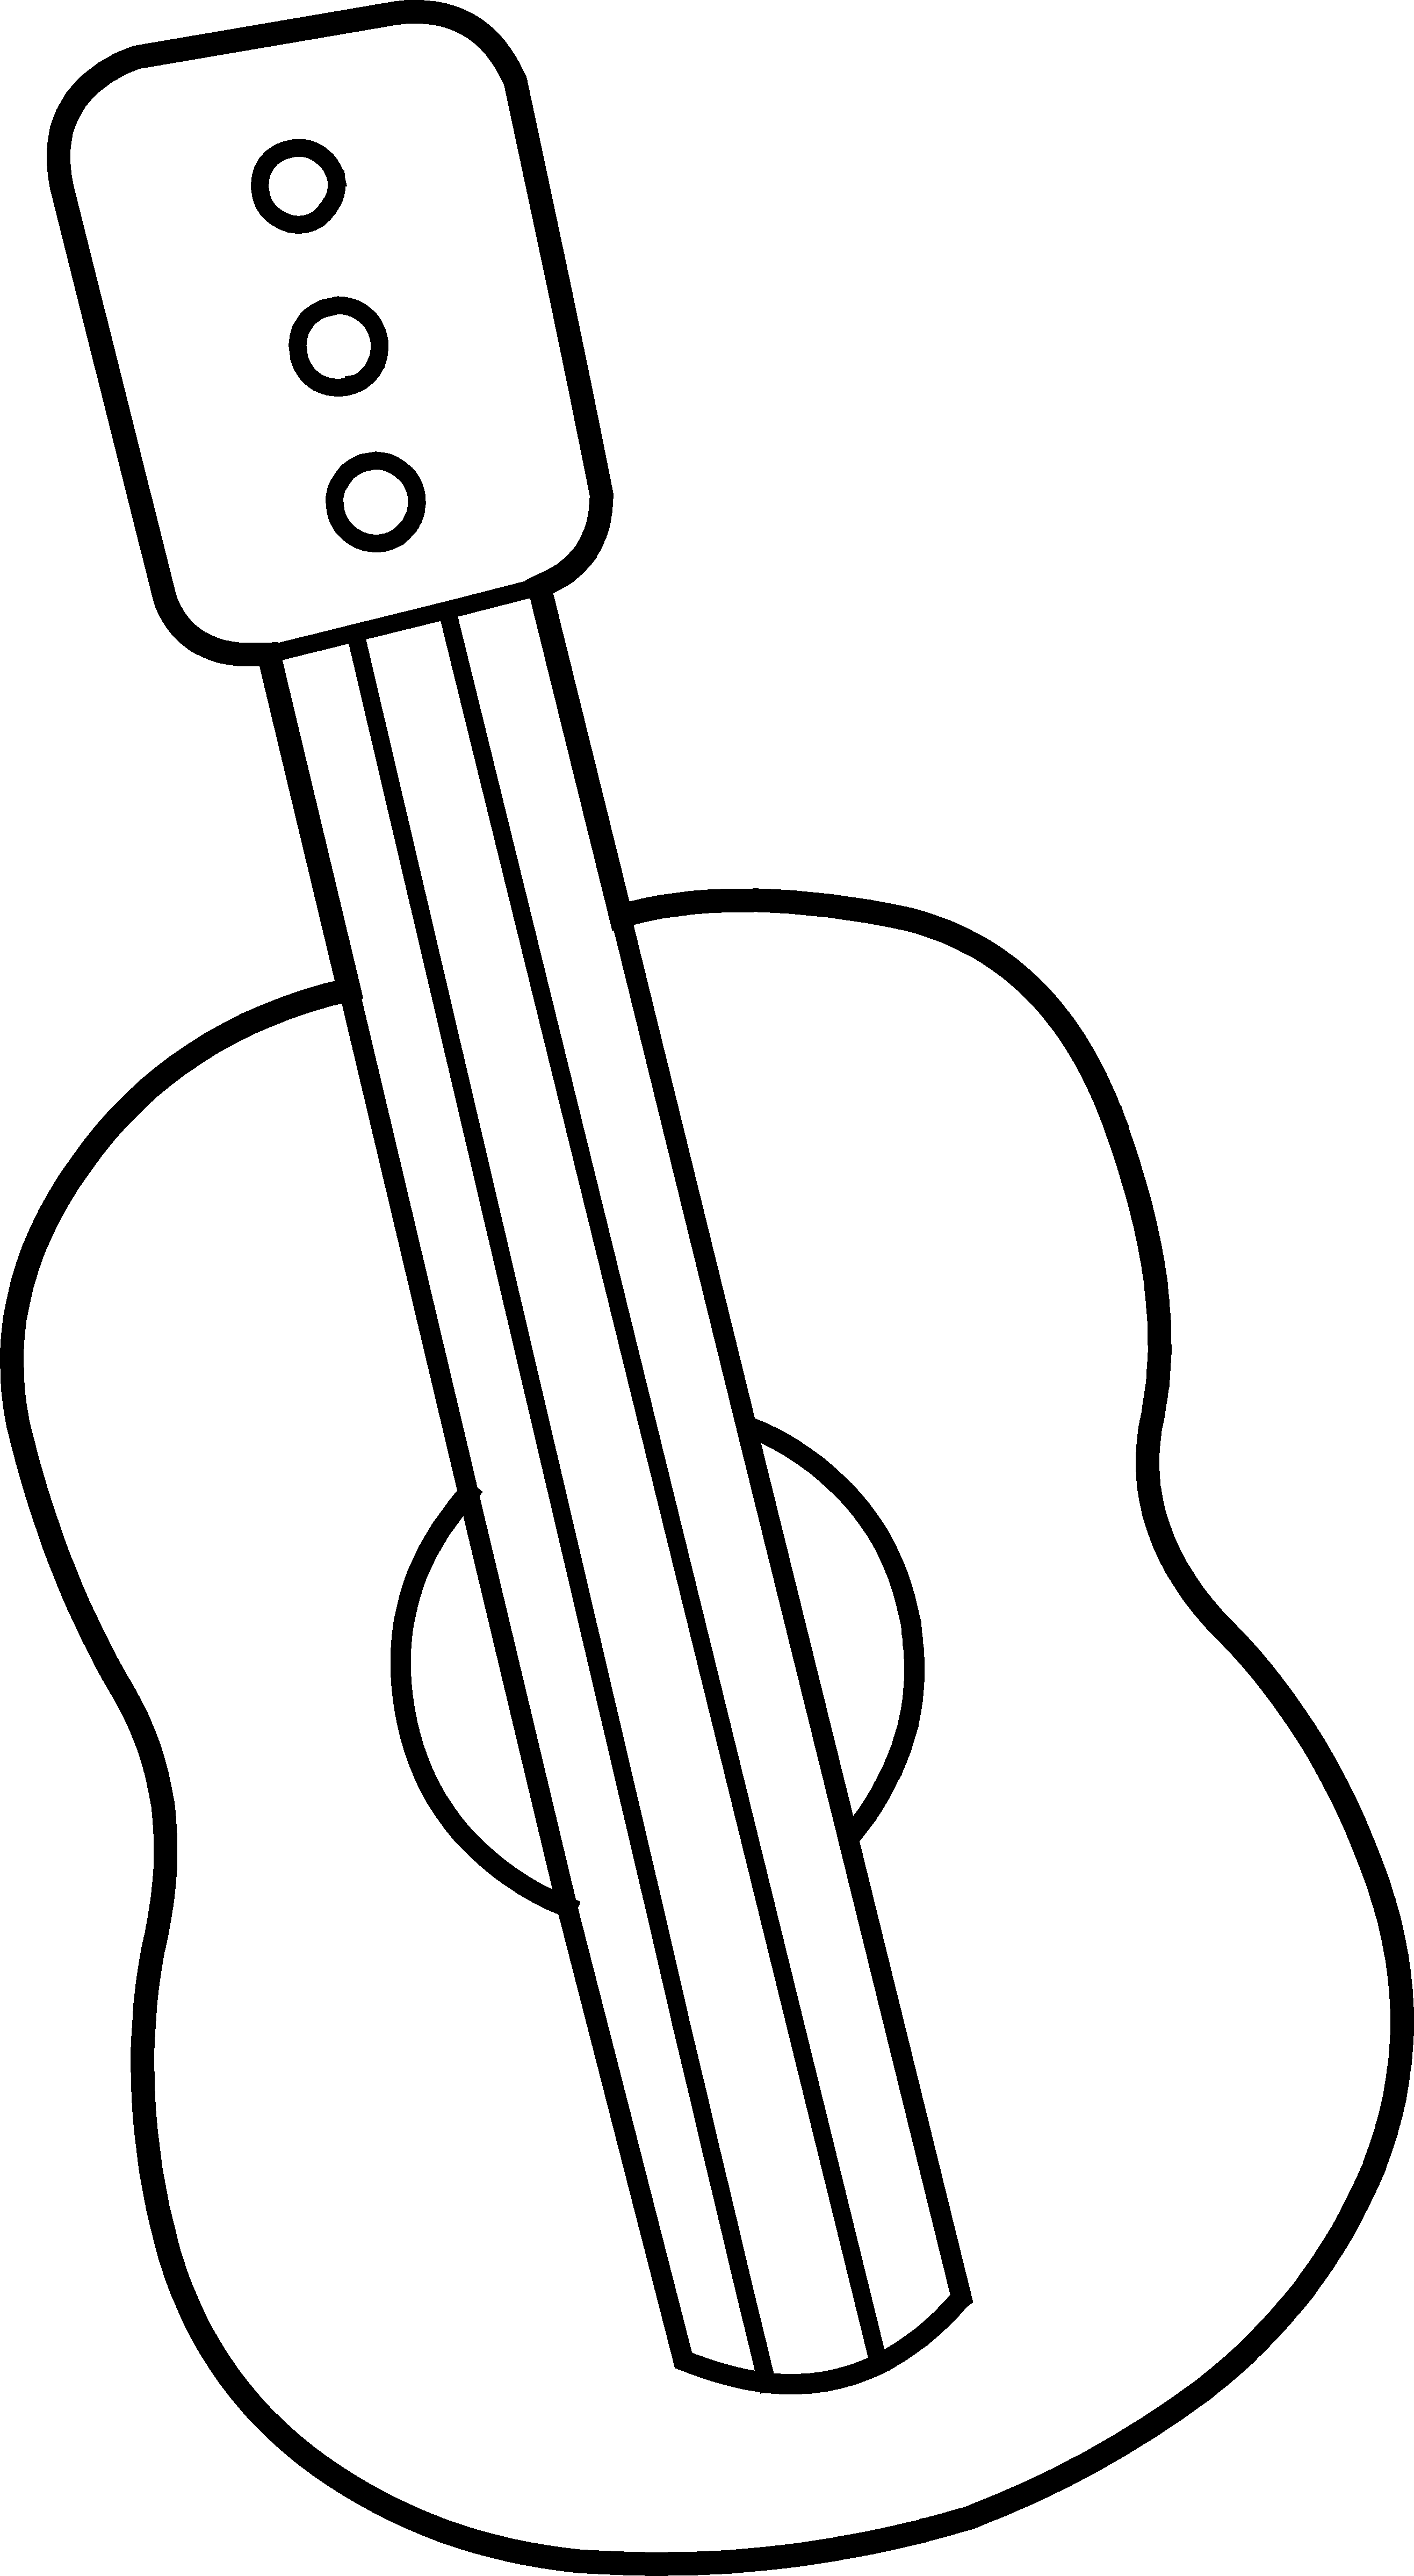 guitar coloring picture musical instrument cliparts free download on clipartmag coloring picture guitar